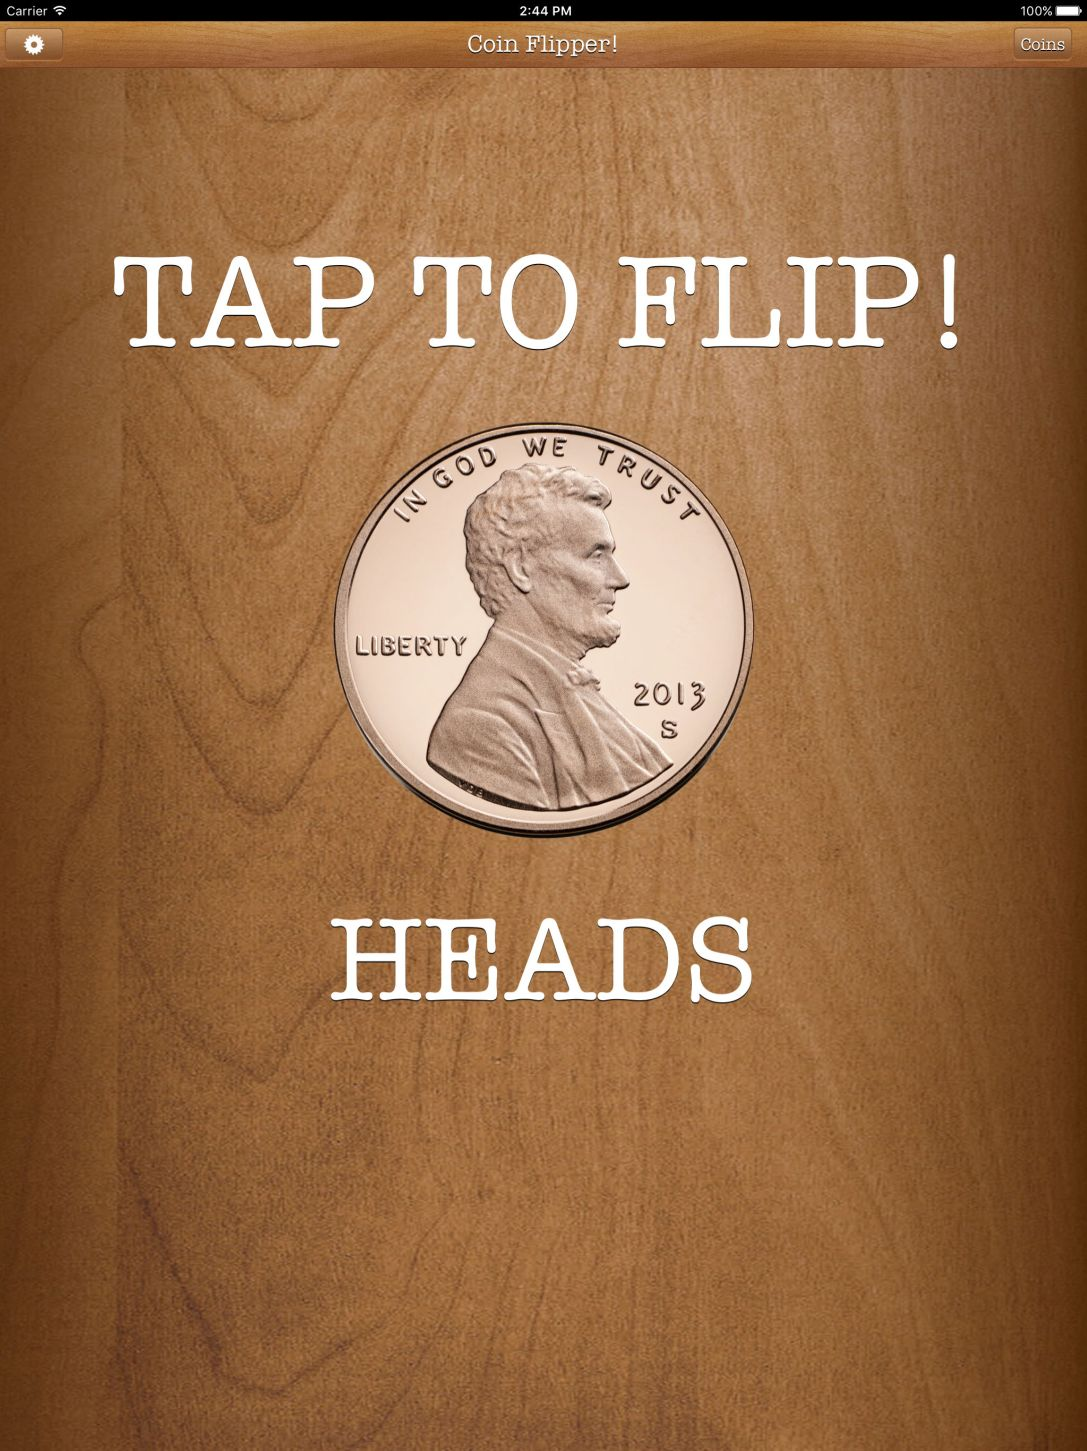 Flip a Coin App penny on heads iPad Pro screenshot.